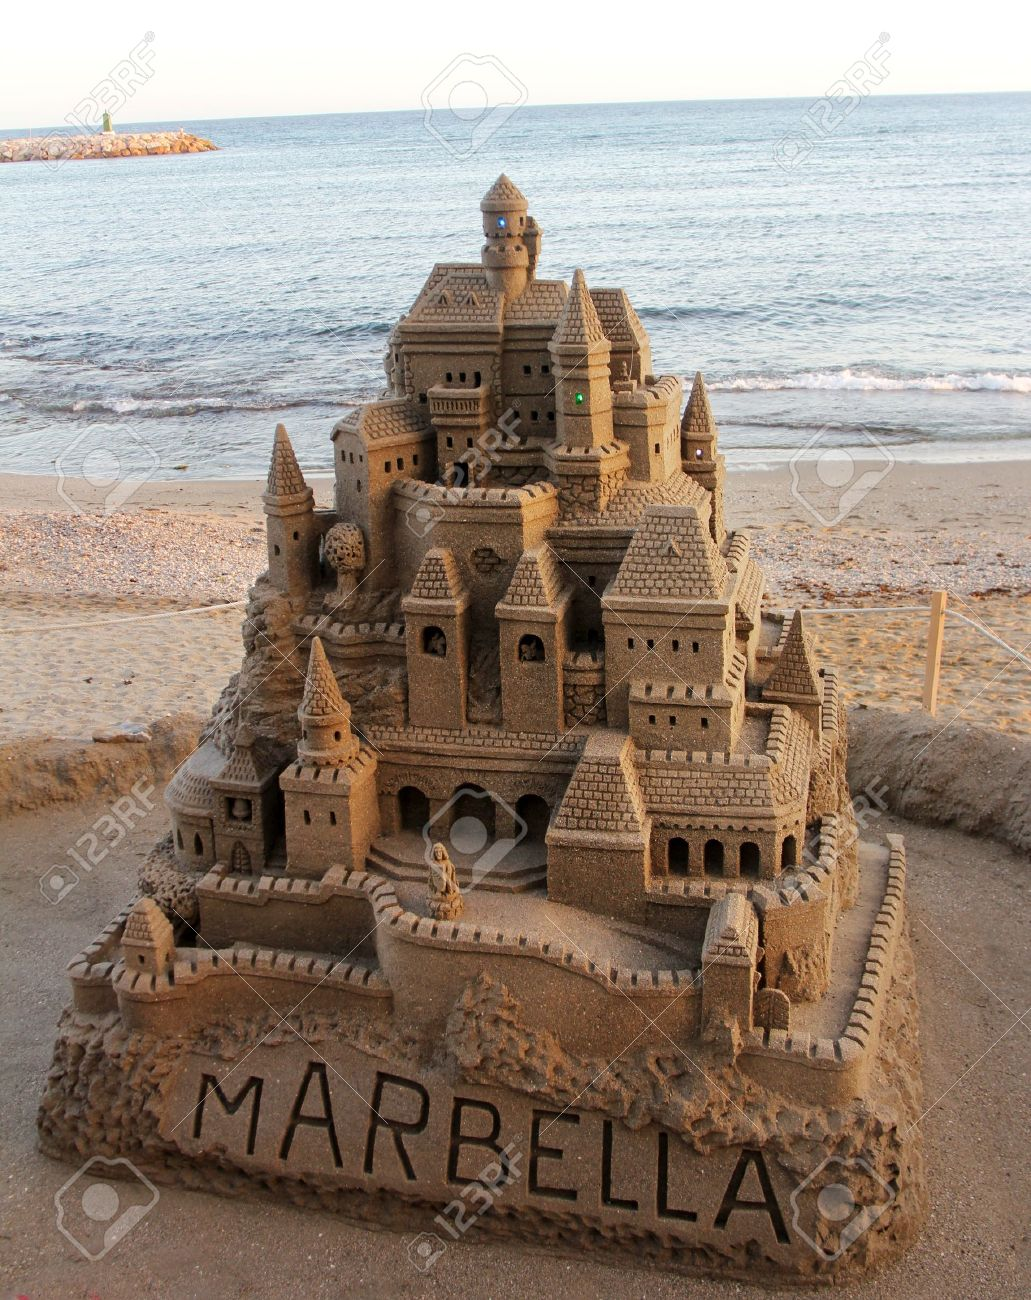 large sandcastle on the beach in spain Stock Photo - 15236894